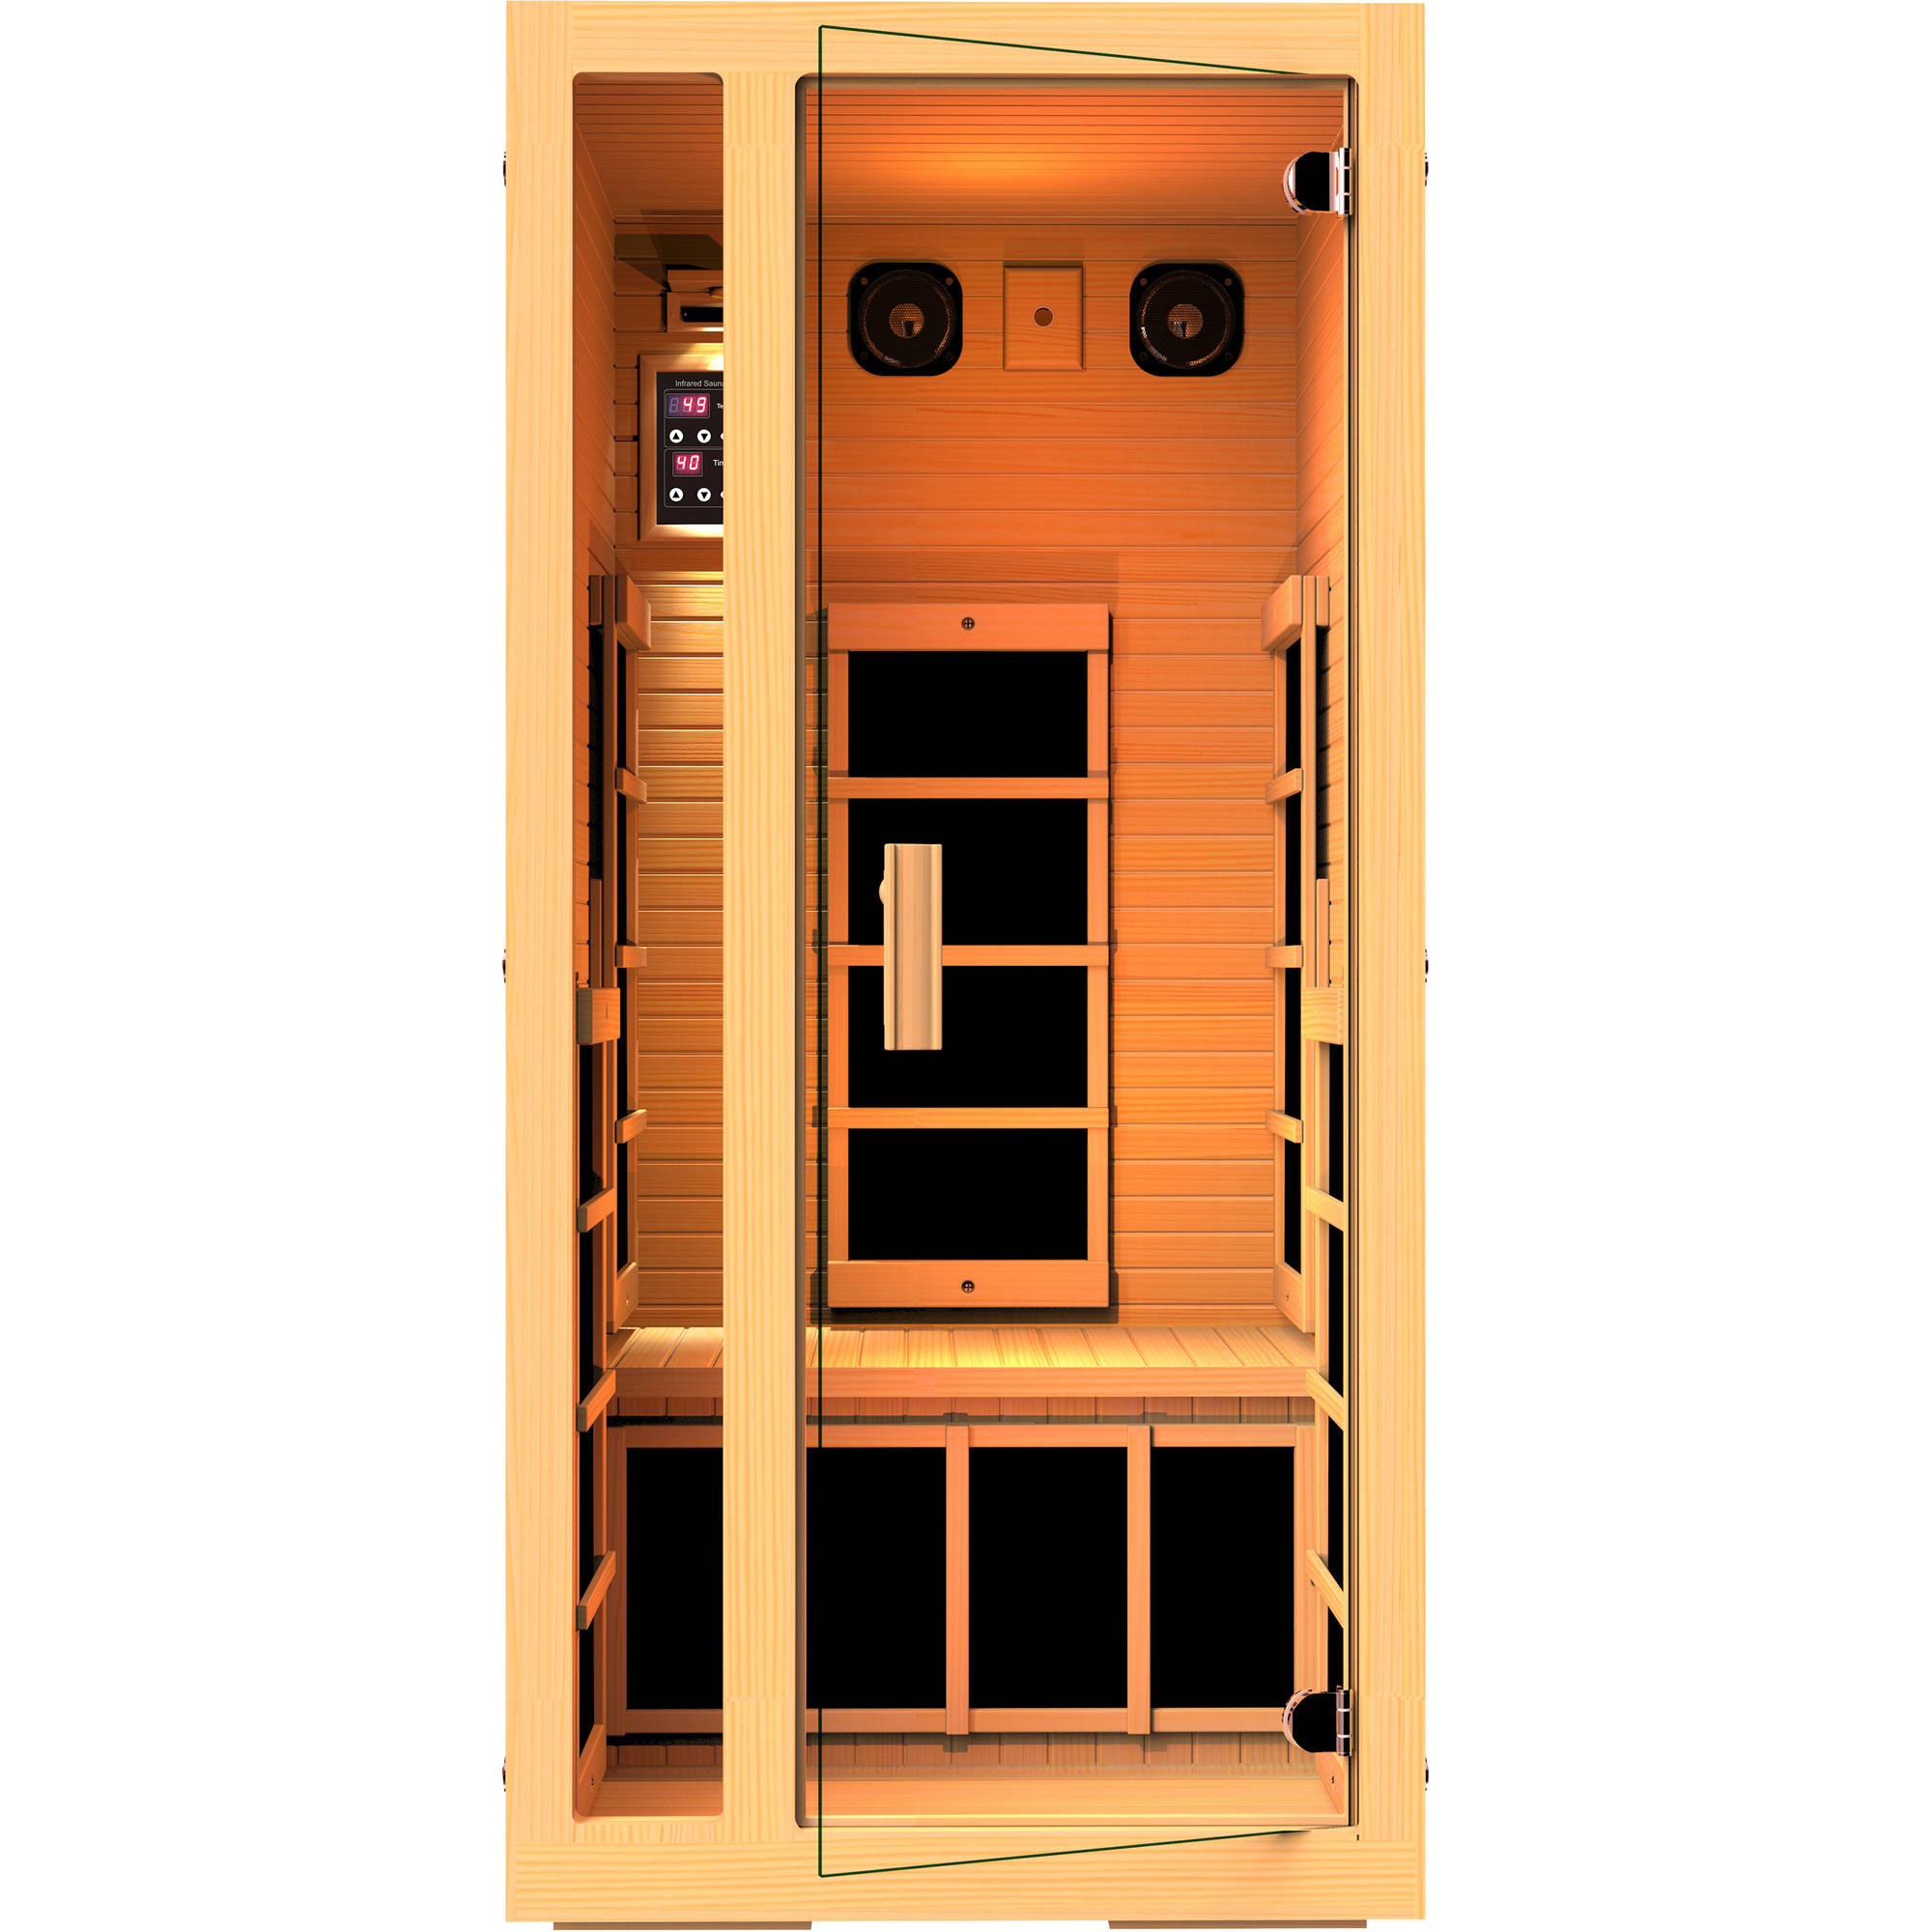 Joyous 1-Person Far Infrared Sauna